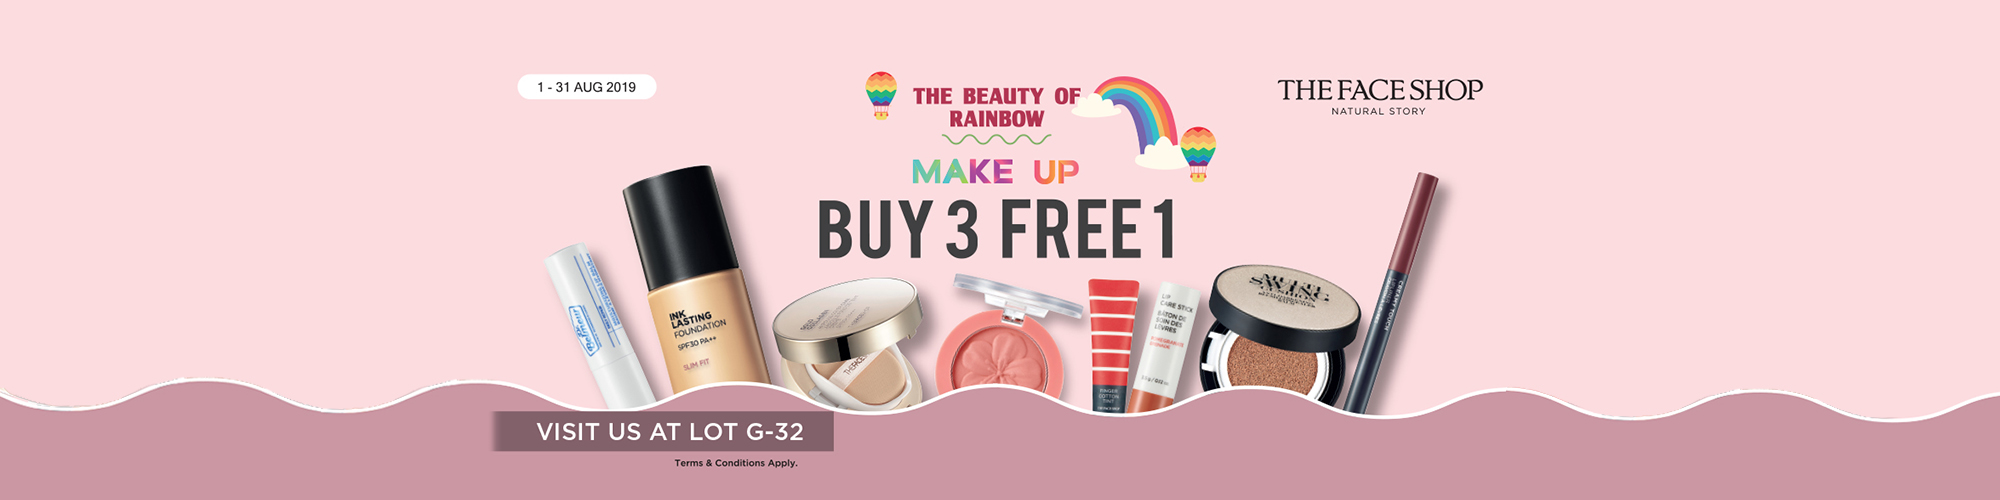 km_website_slider_thefaceshop_010819